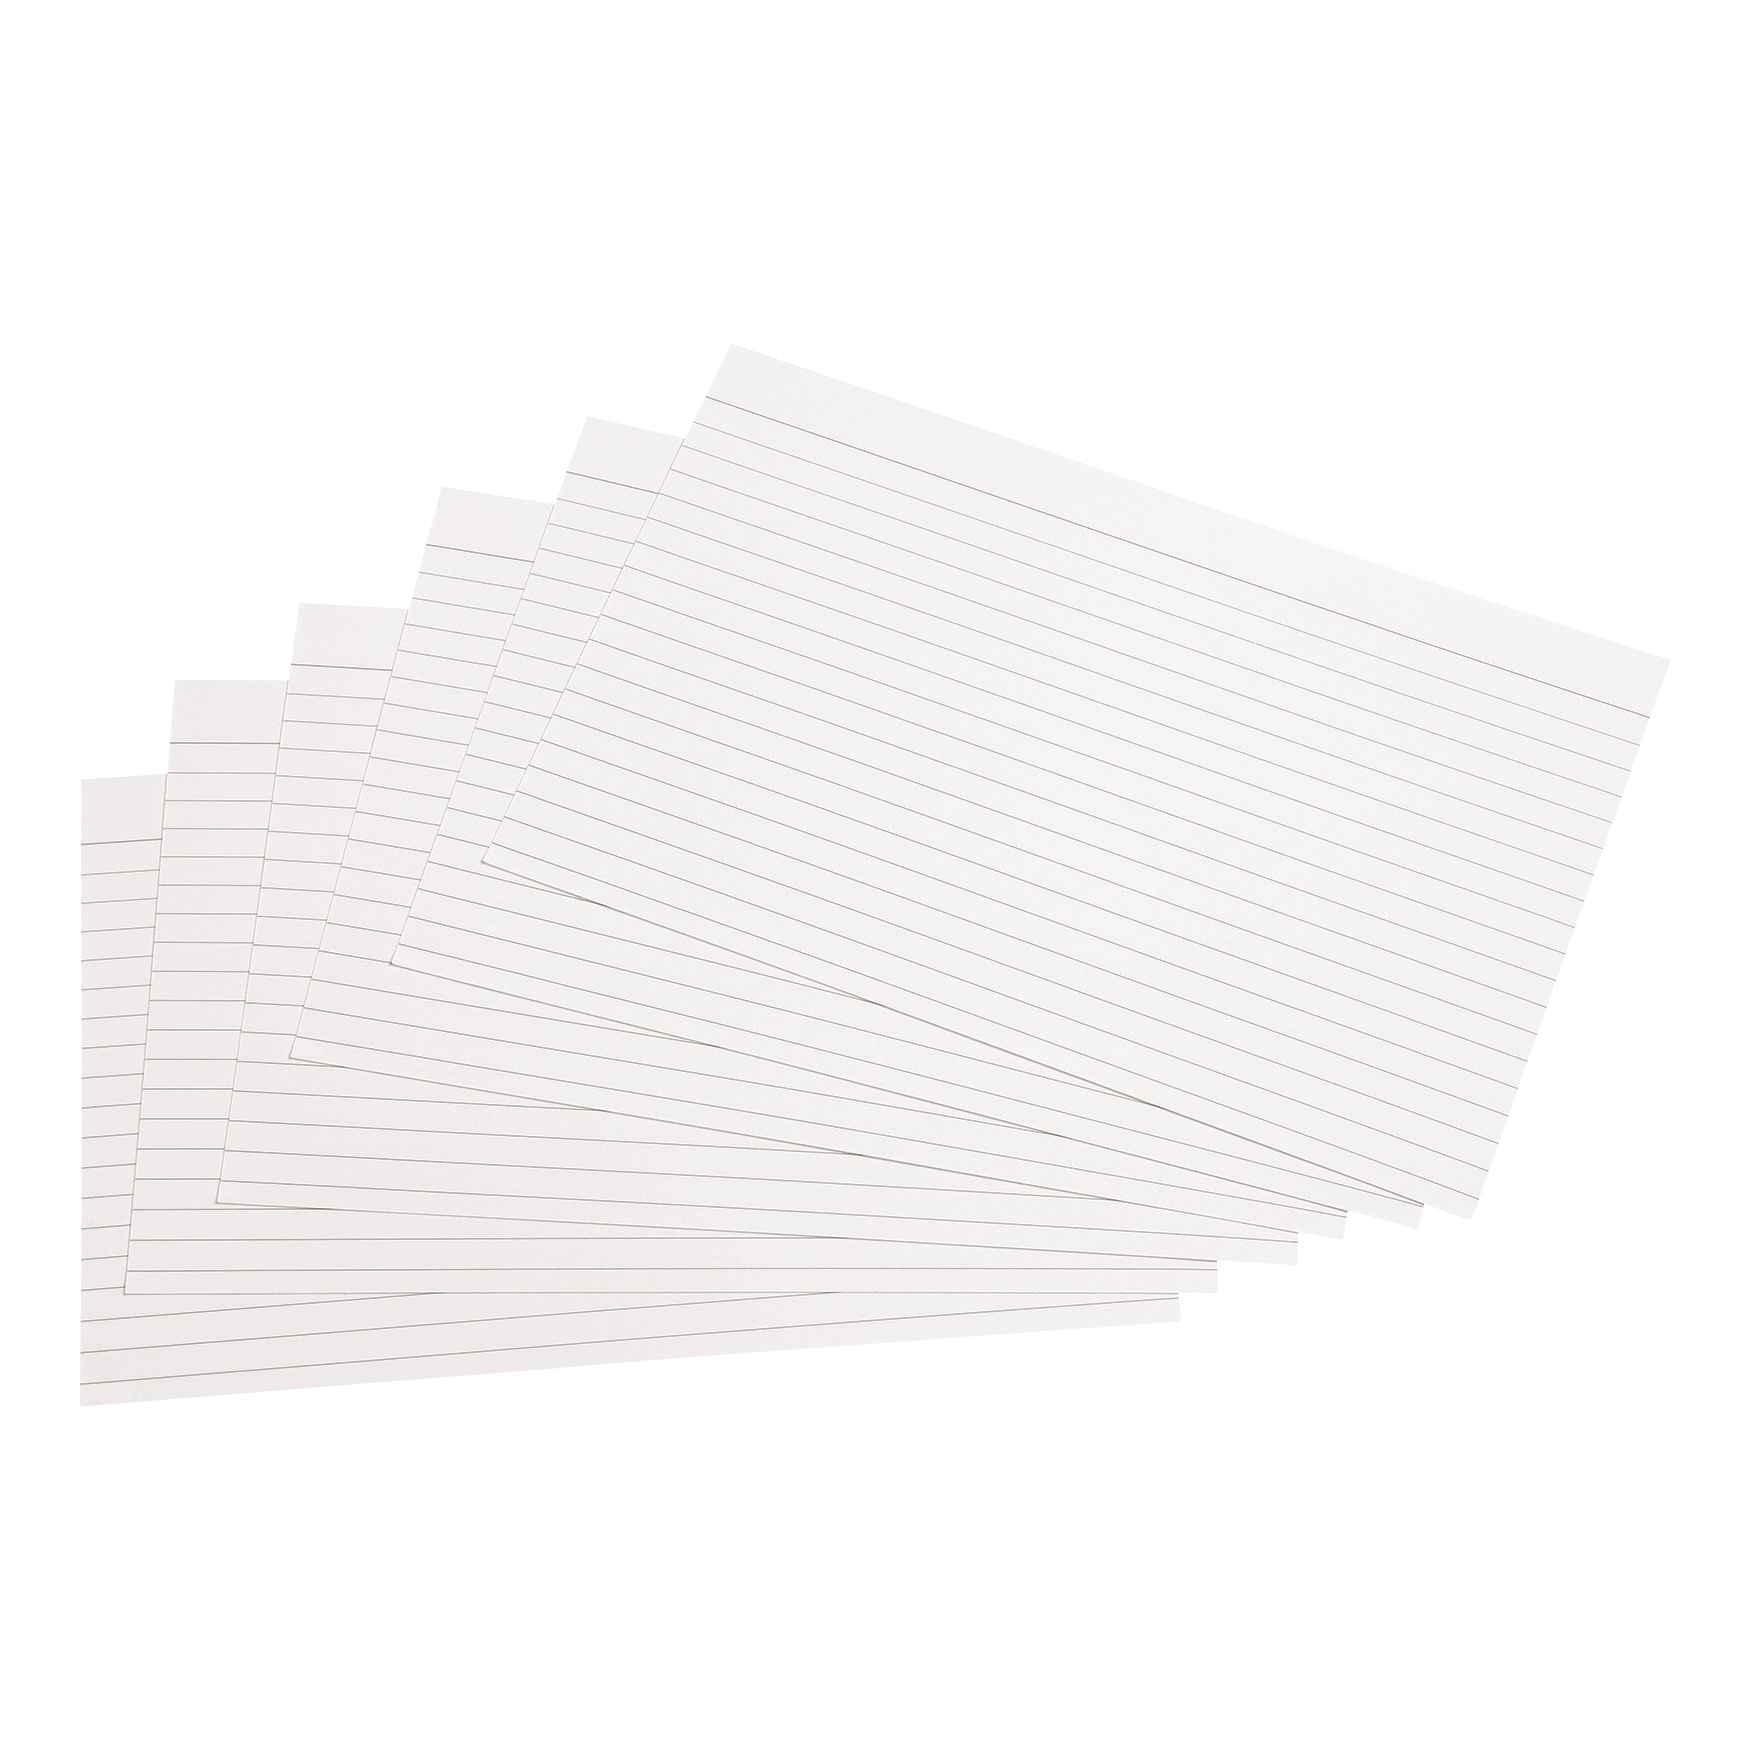 5 Star Office Record Cards Ruled Both Sides 8x5in 203x127mm White Pack 100